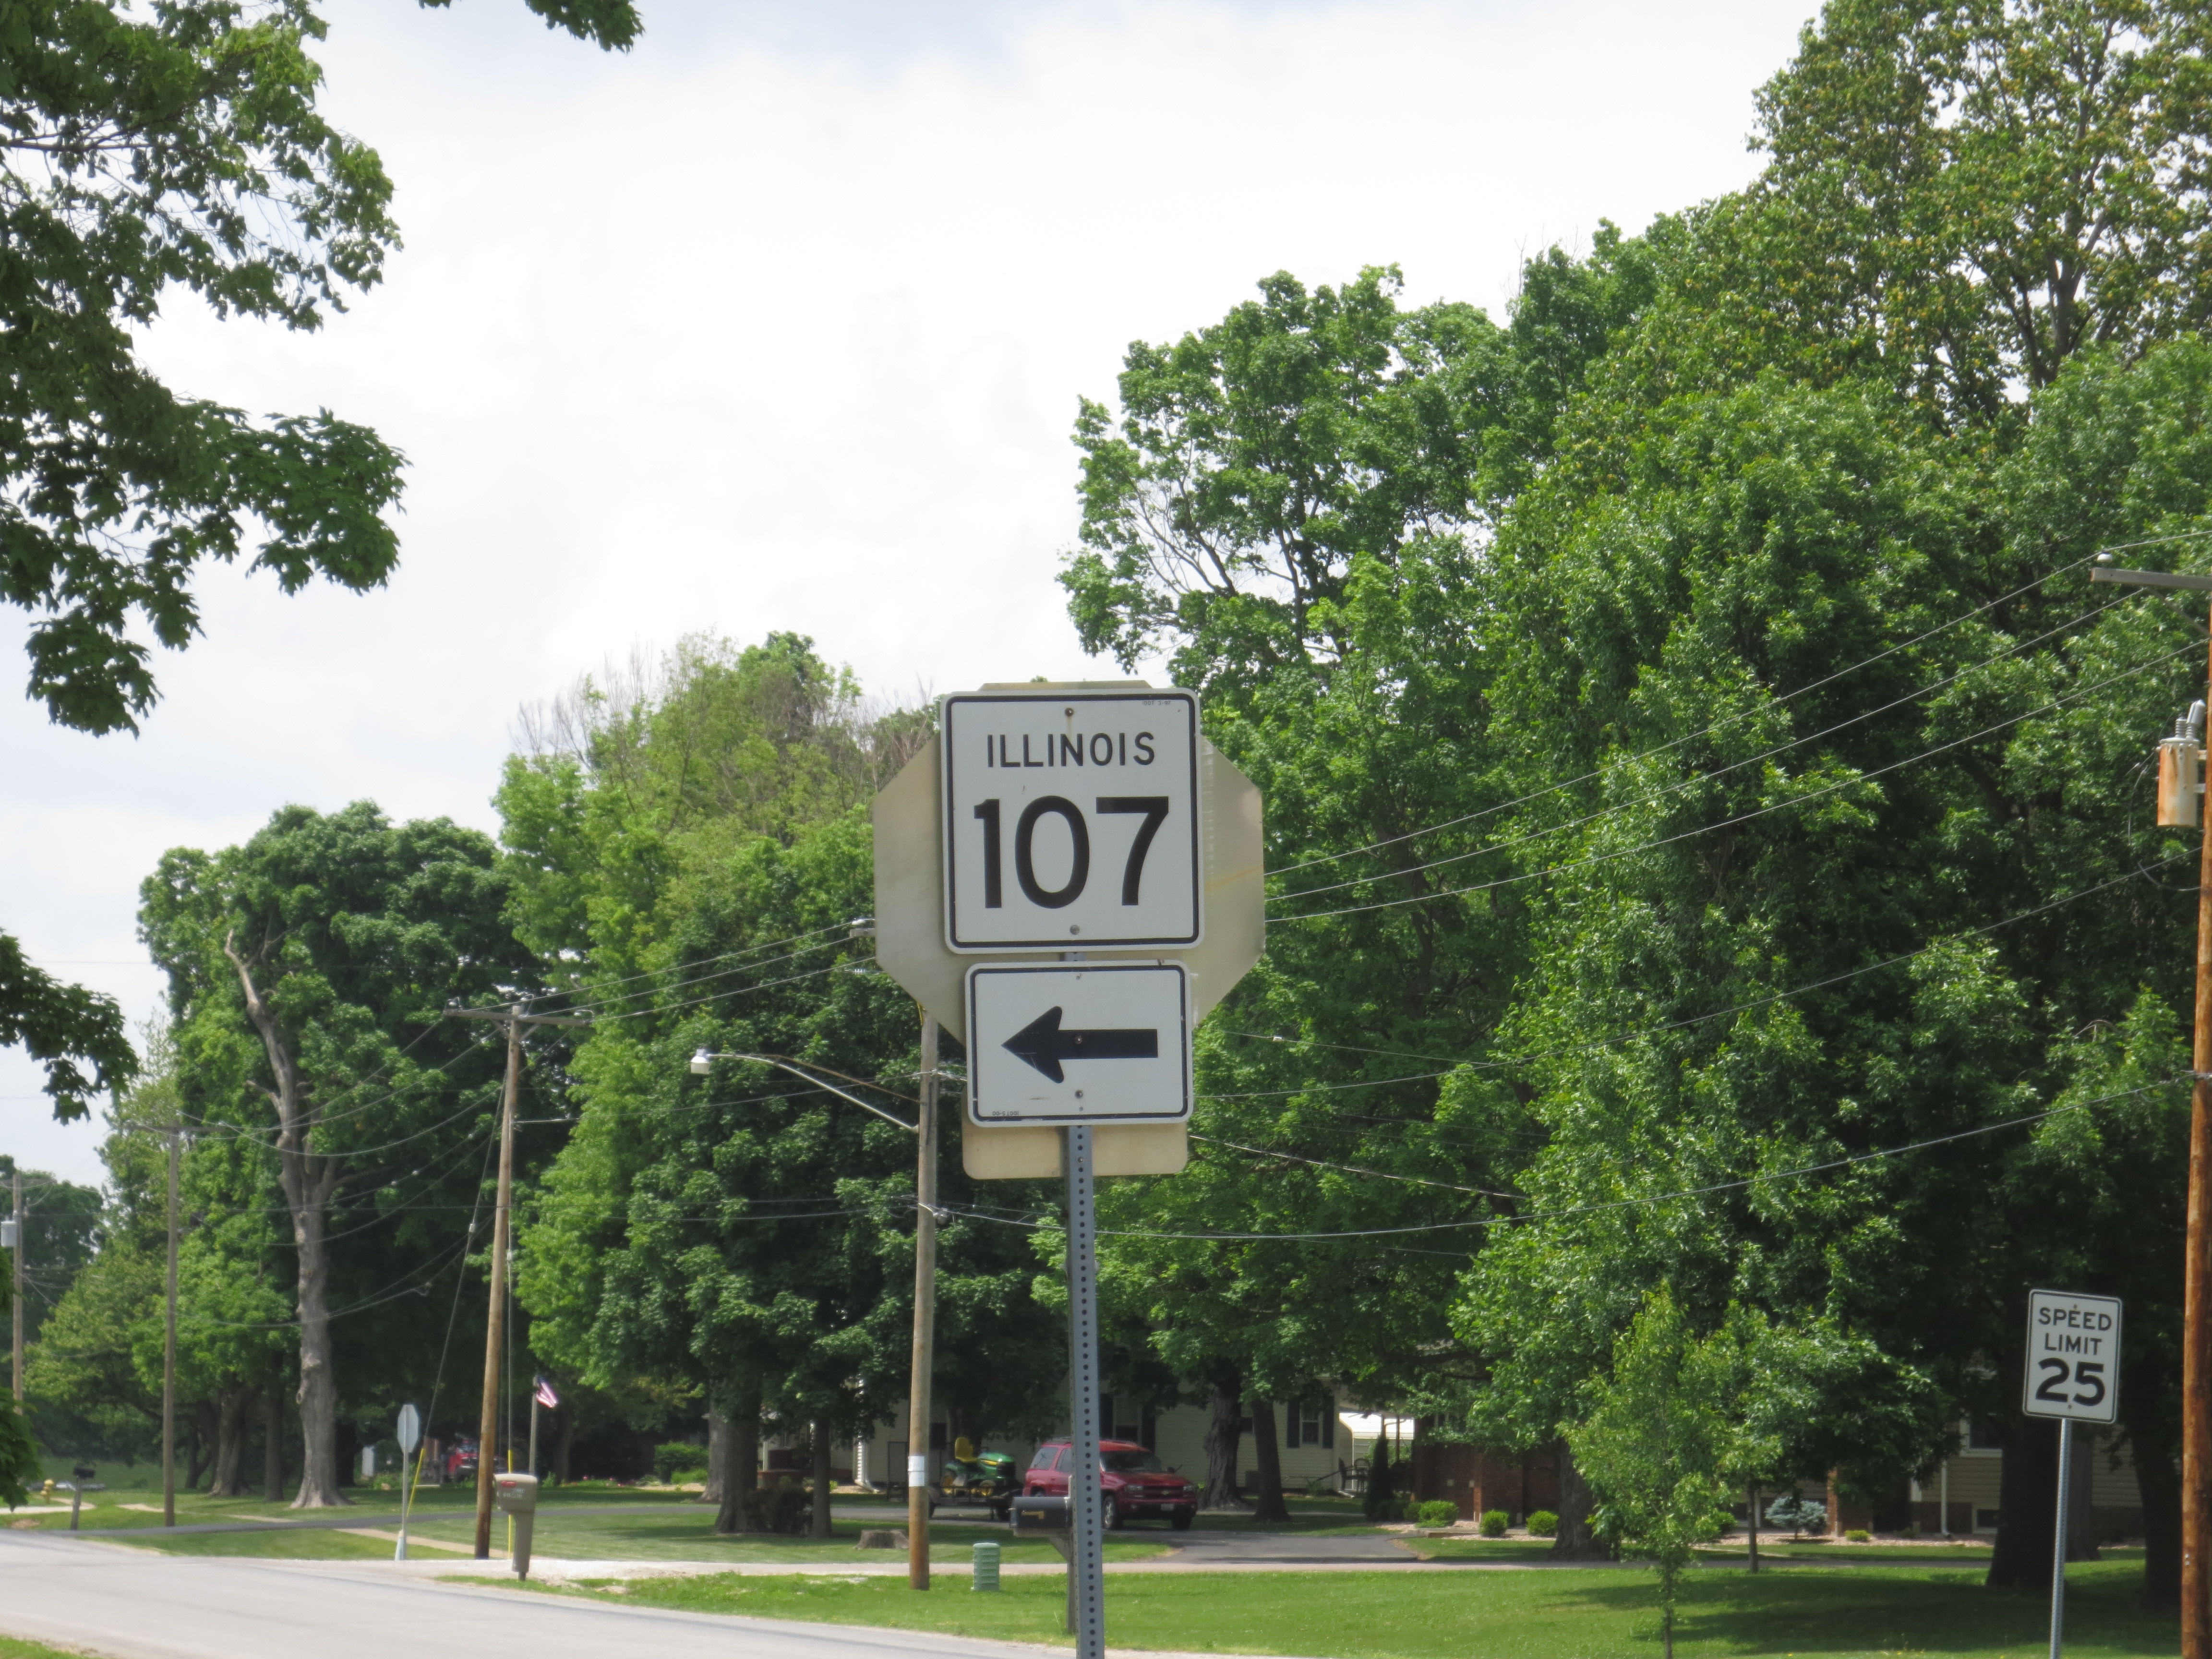 Illinois pike county griggsville - 107 Illinois Route Highway State Sign